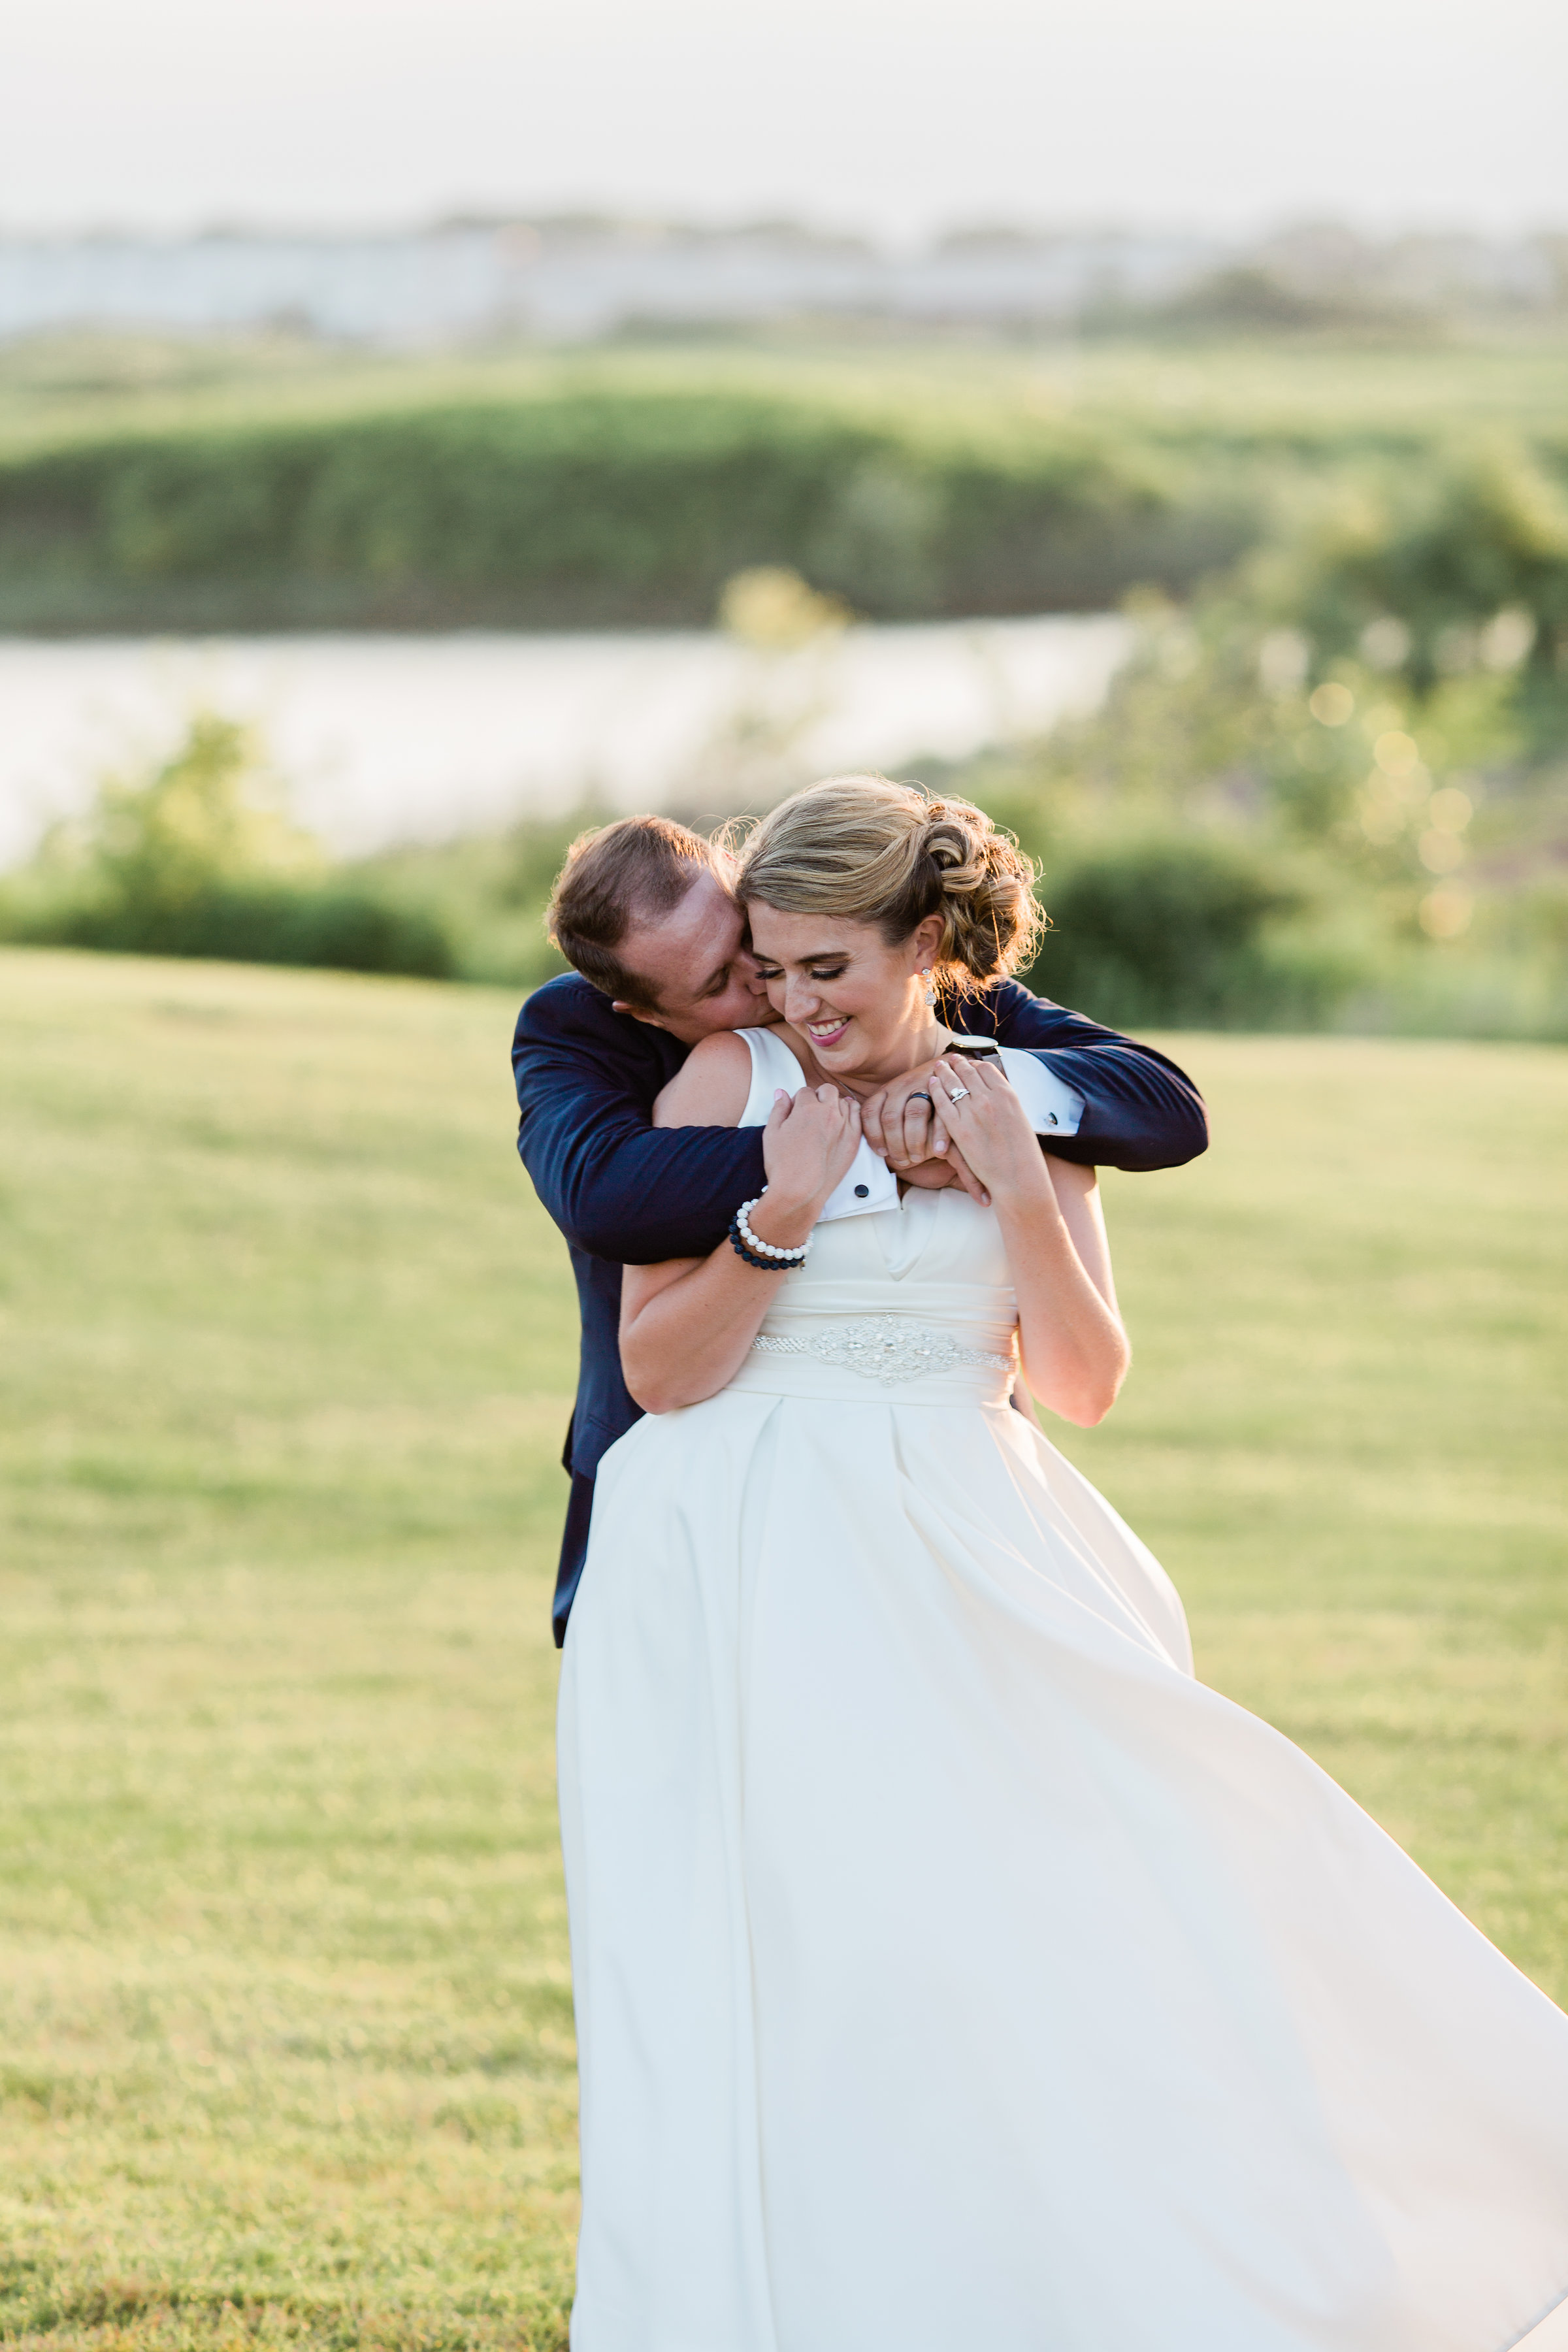 Tips for Posing for Wedding Photos Photography by Lauryn (6)